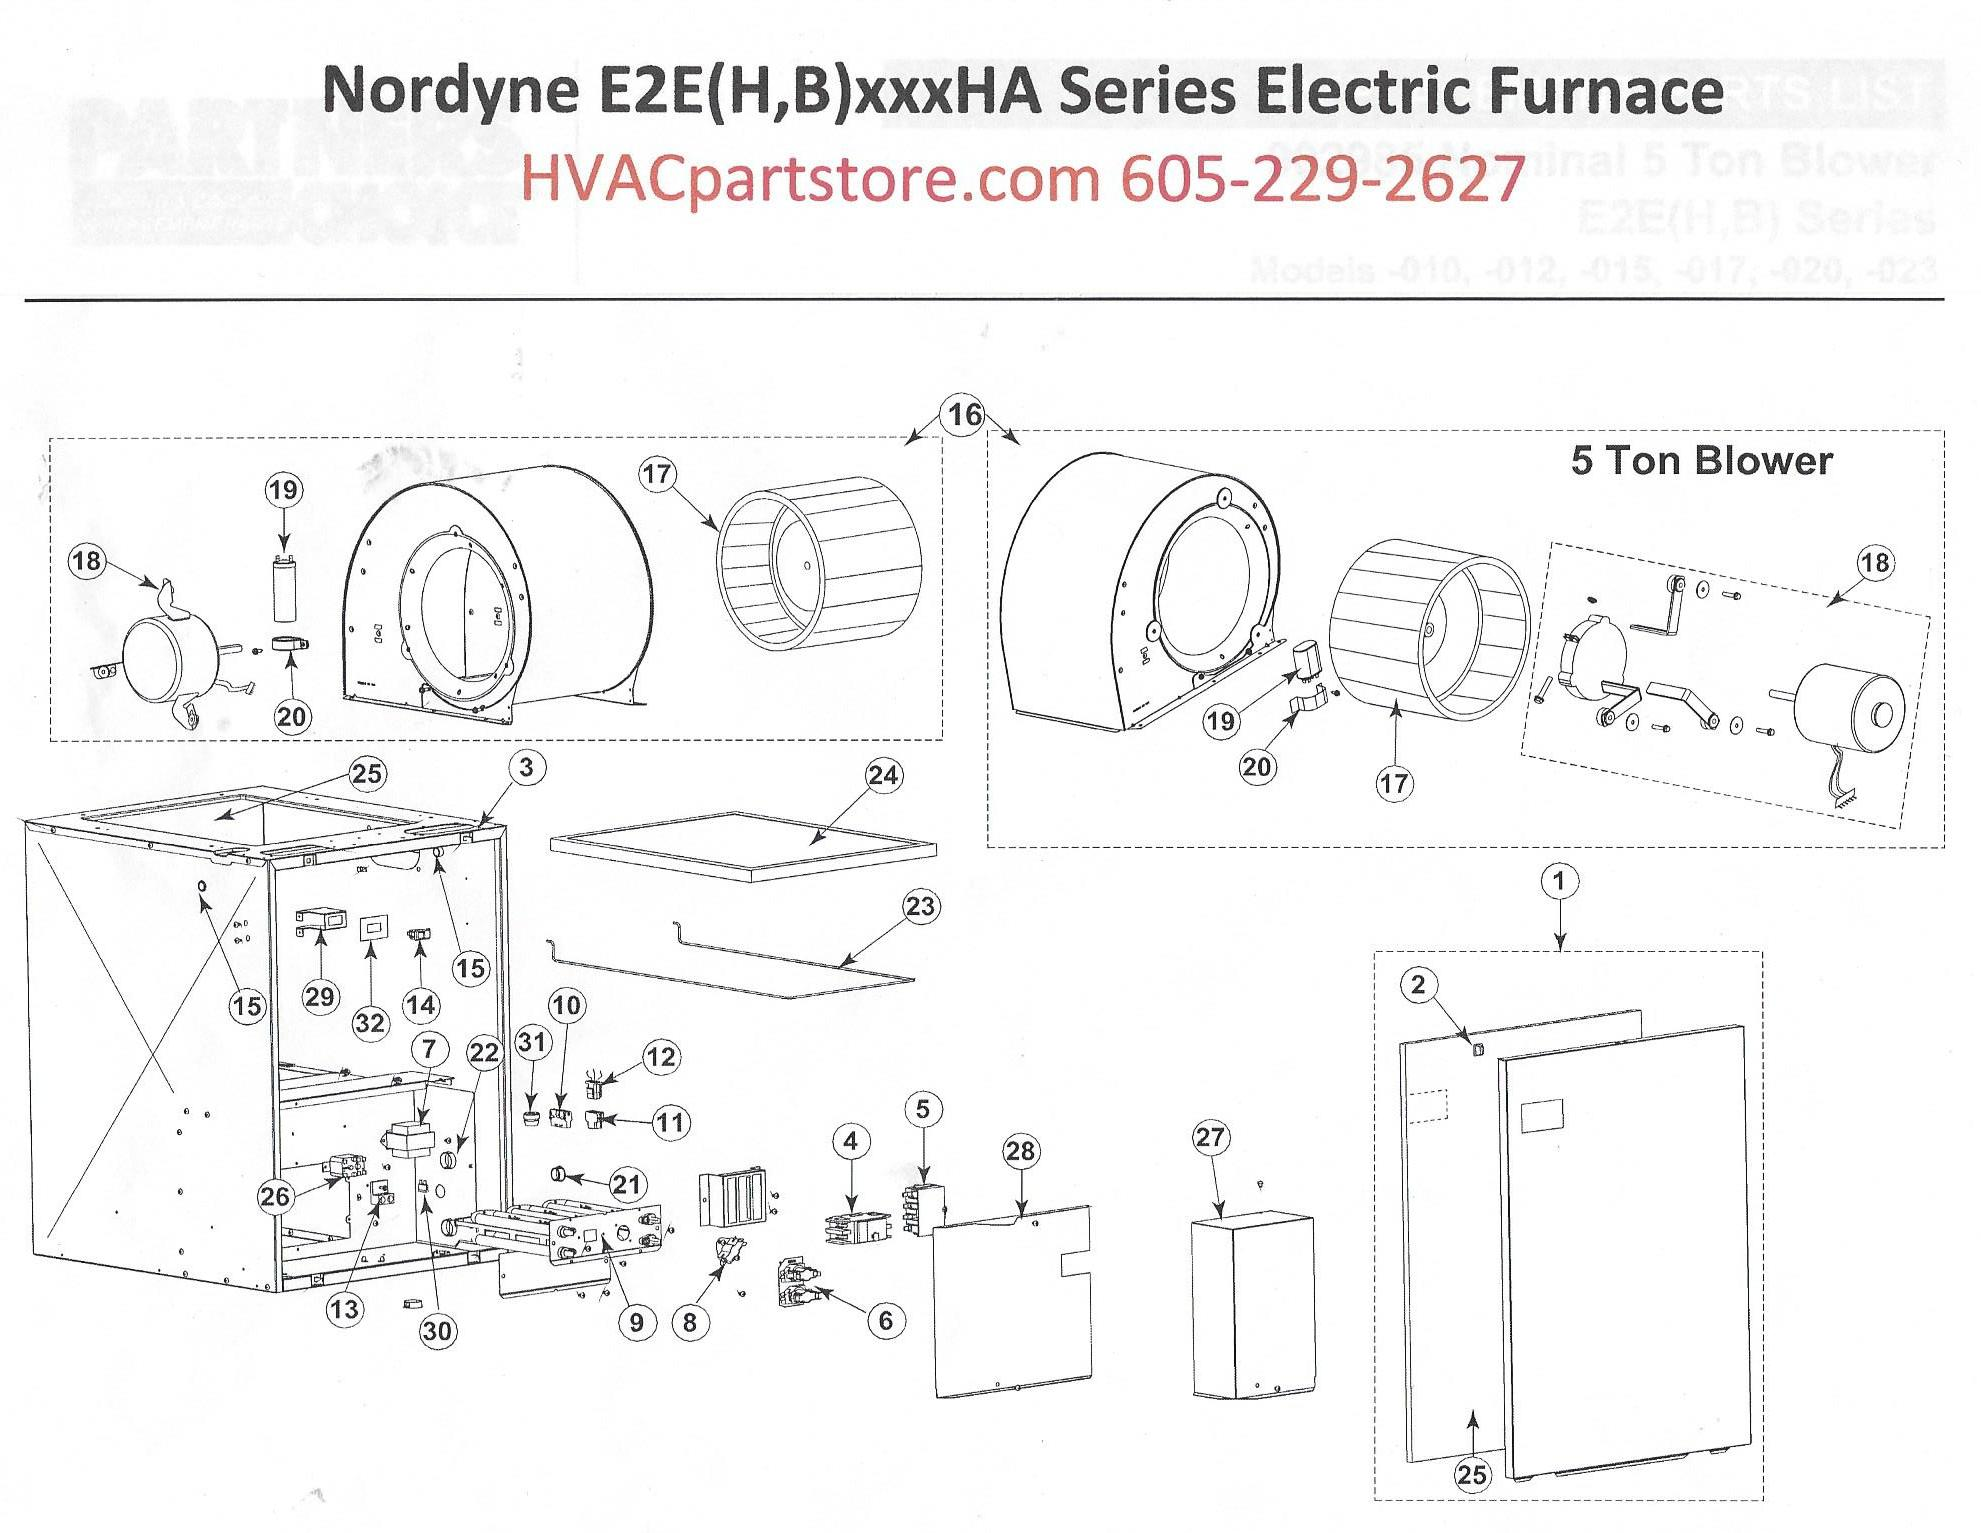 E2HADiagram_b4400f5e fcd1 43cd a422 4ef2ce8cde99?6326583503626438513 e2eb017ha nordyne electric furnace parts hvacpartstore Wiring Diagram for Miller Electric Furnace at eliteediting.co